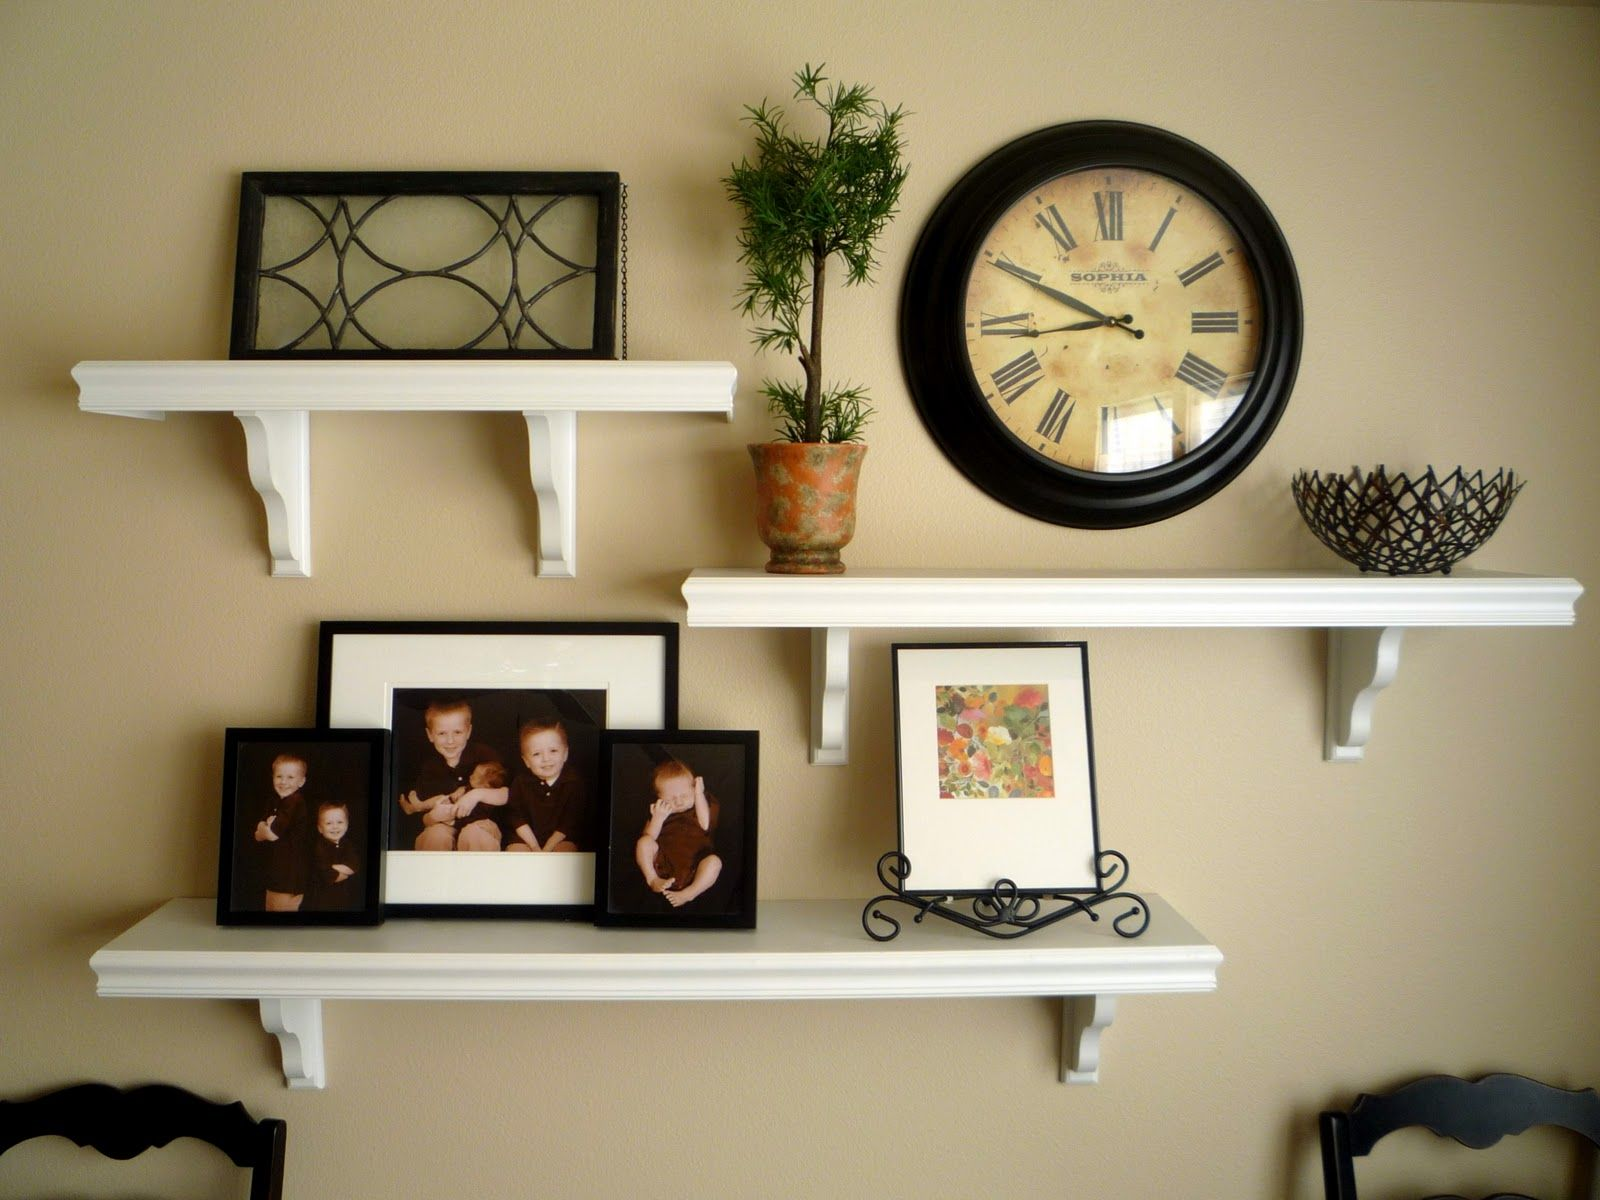 Home wall decor bedroom - Picture And Shelves On Wall Together It All Started After Being Inspired By Thrifty Decor